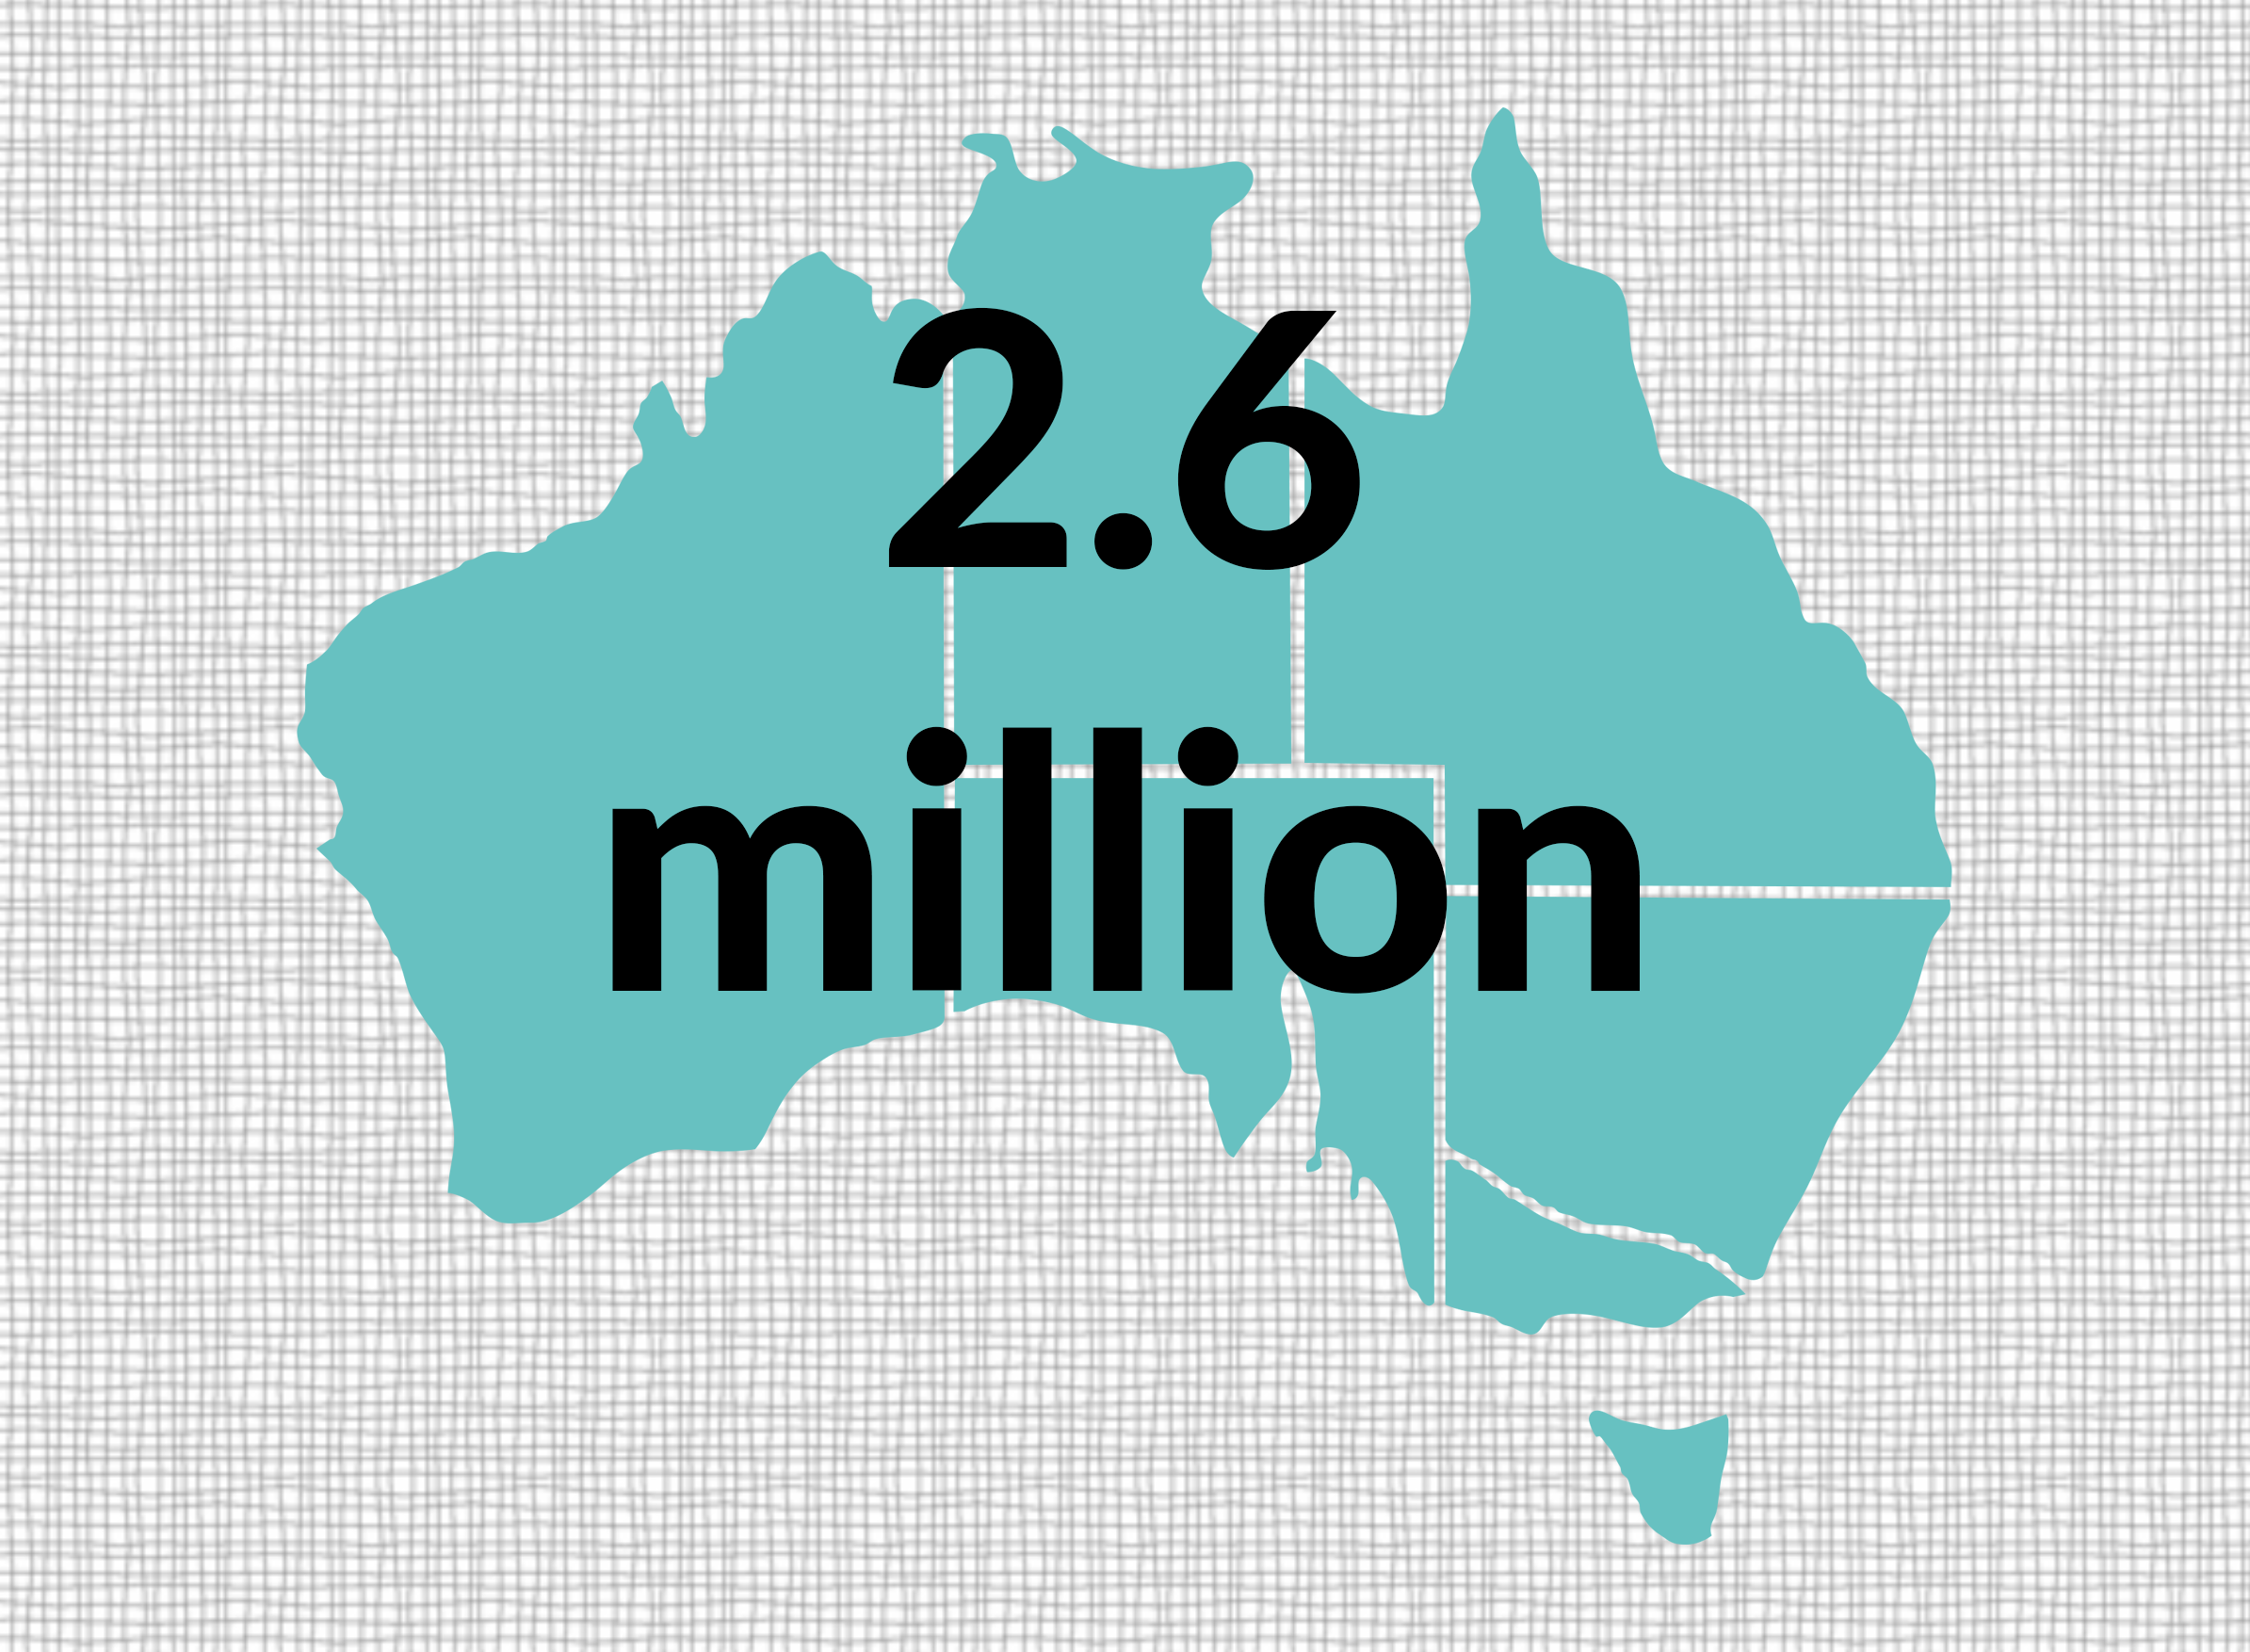 Small scale renewable energy systems in Australia reached 2.6 million